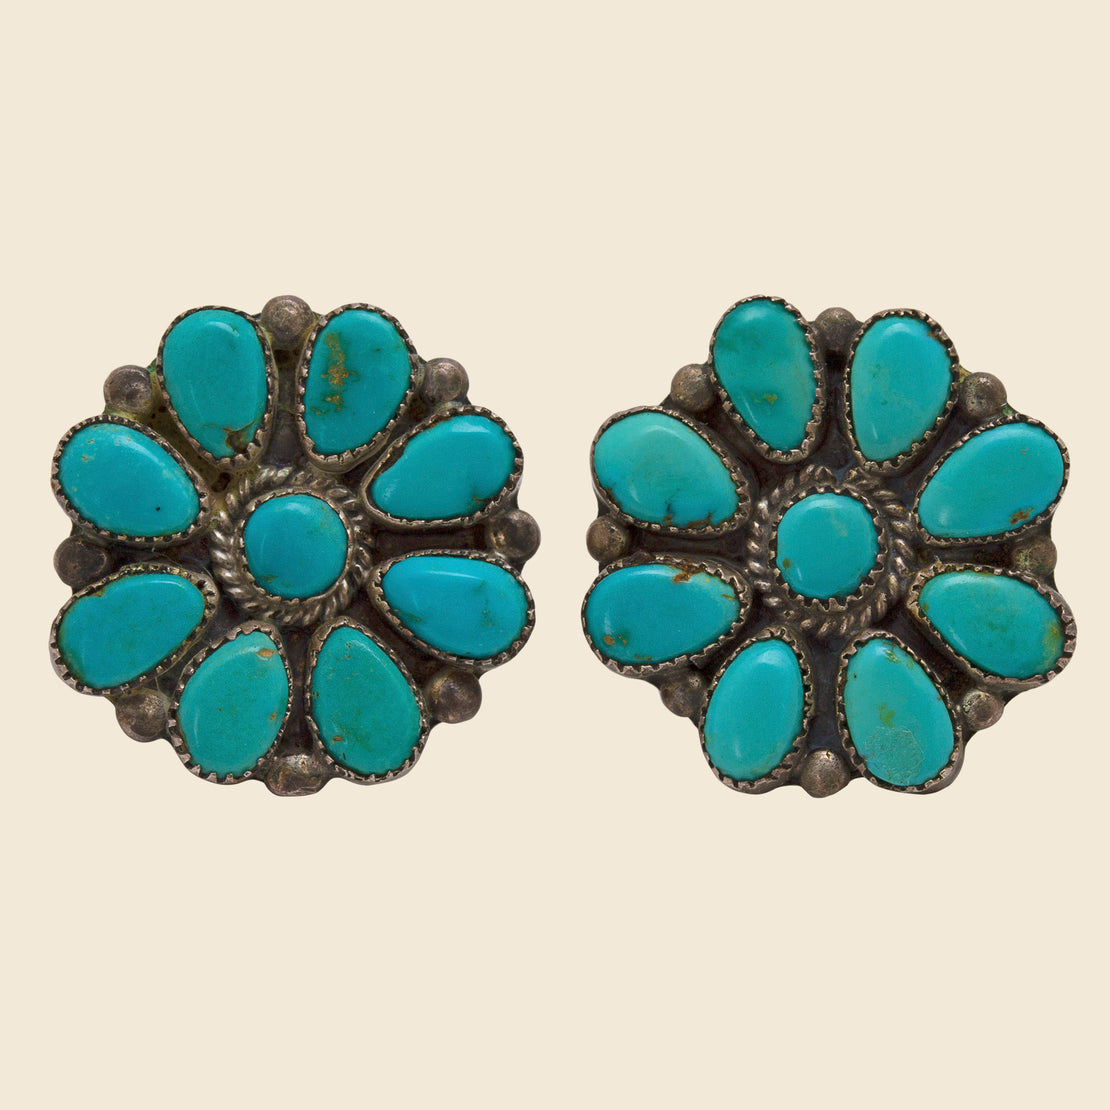 Vintage Turquoise Flower Earrings - Silver